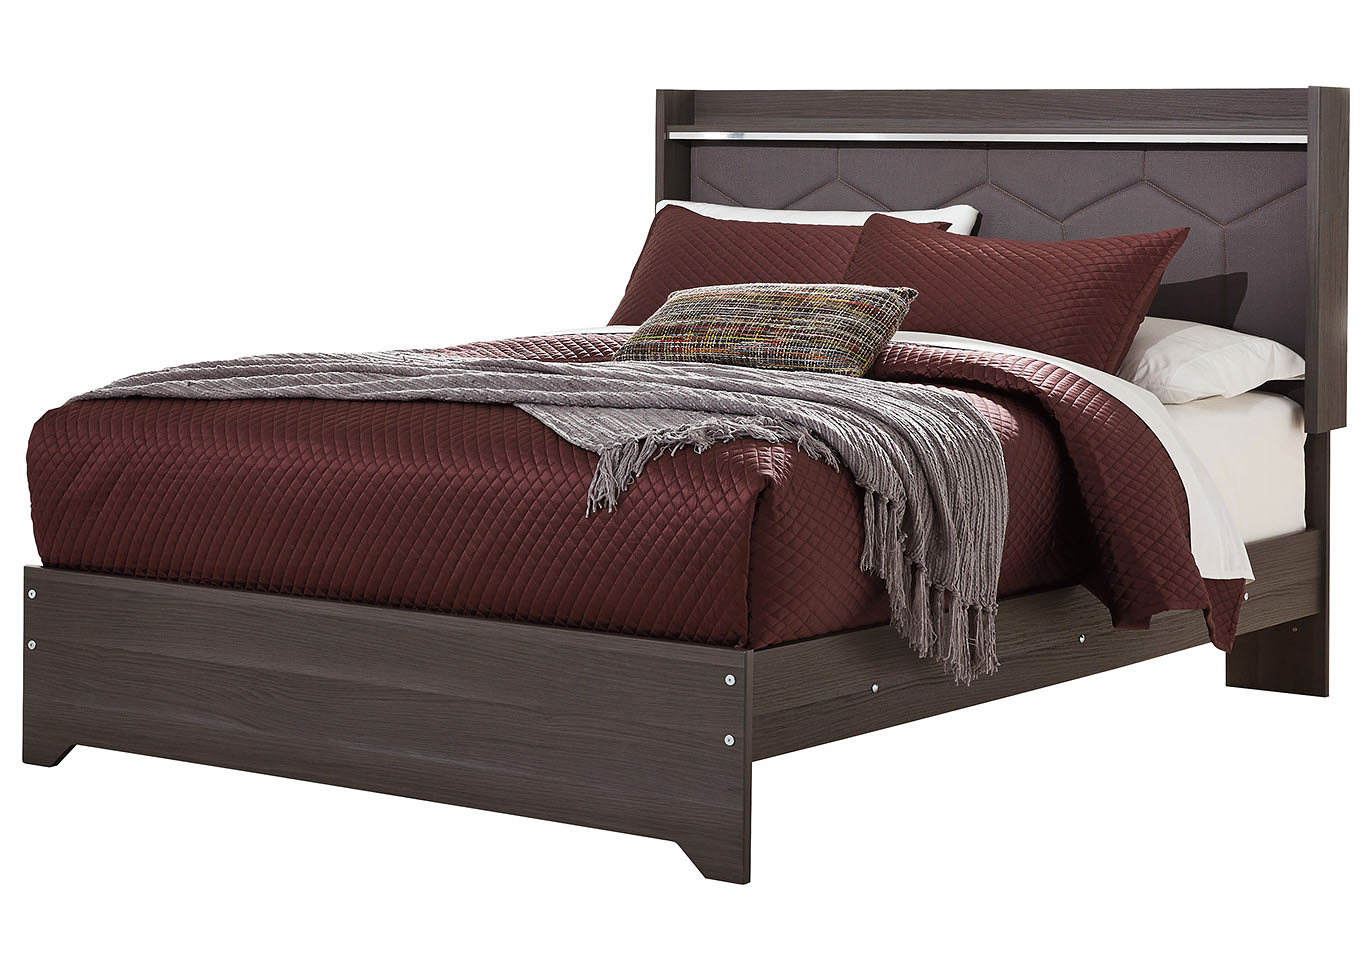 Annikus Gray Queen Upholstered Panel Bed,Signature Design By Ashley